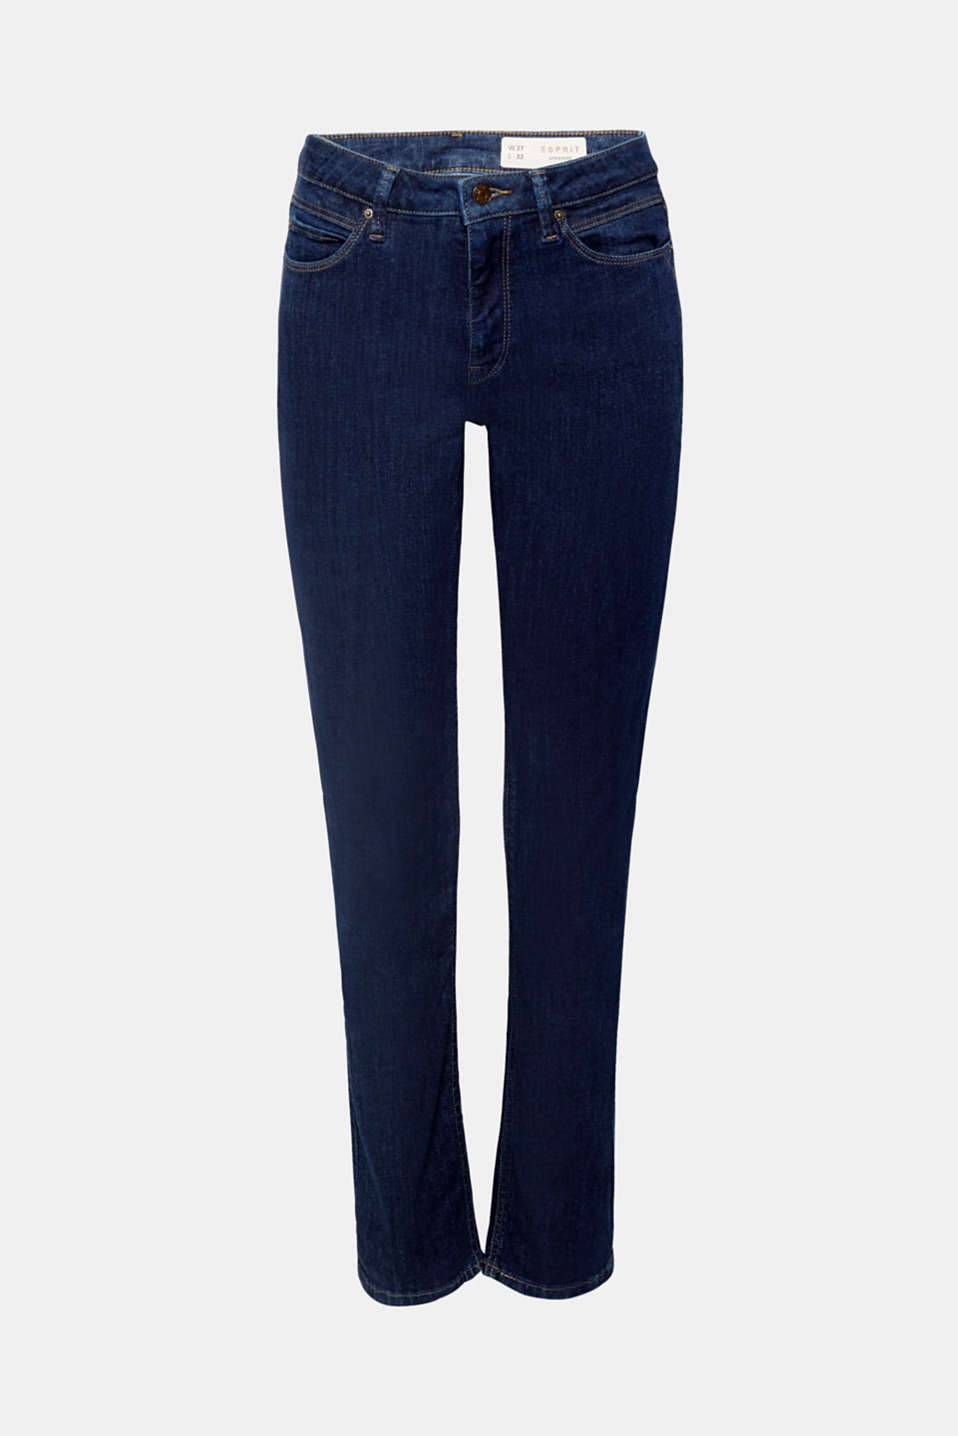 Dark denim, a high-rise waist, straight legs – it is no wonder that these stretch jeans are so flattering!